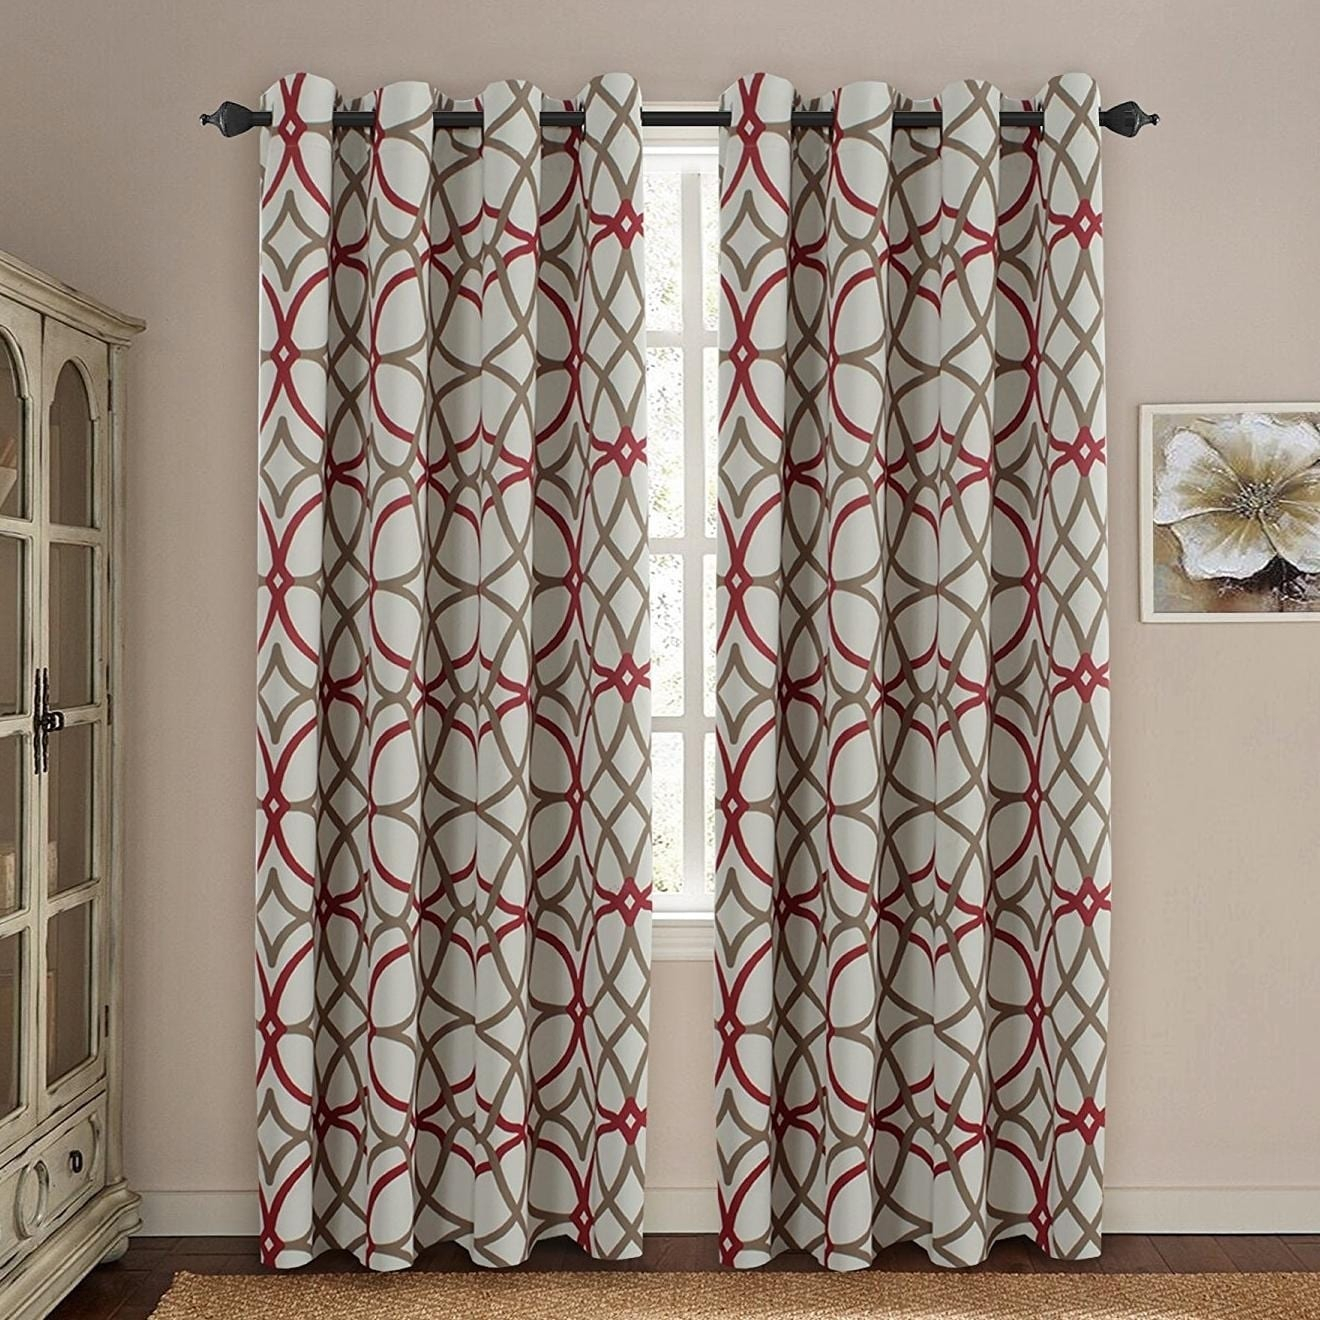 Premier Home Decor Inc Primebeau Geometric Pattern Blackout Curtain Pair 2 Pack Intended For Primebeau Geometric Pattern Blackout Curtain Pairs (View 2 of 20)